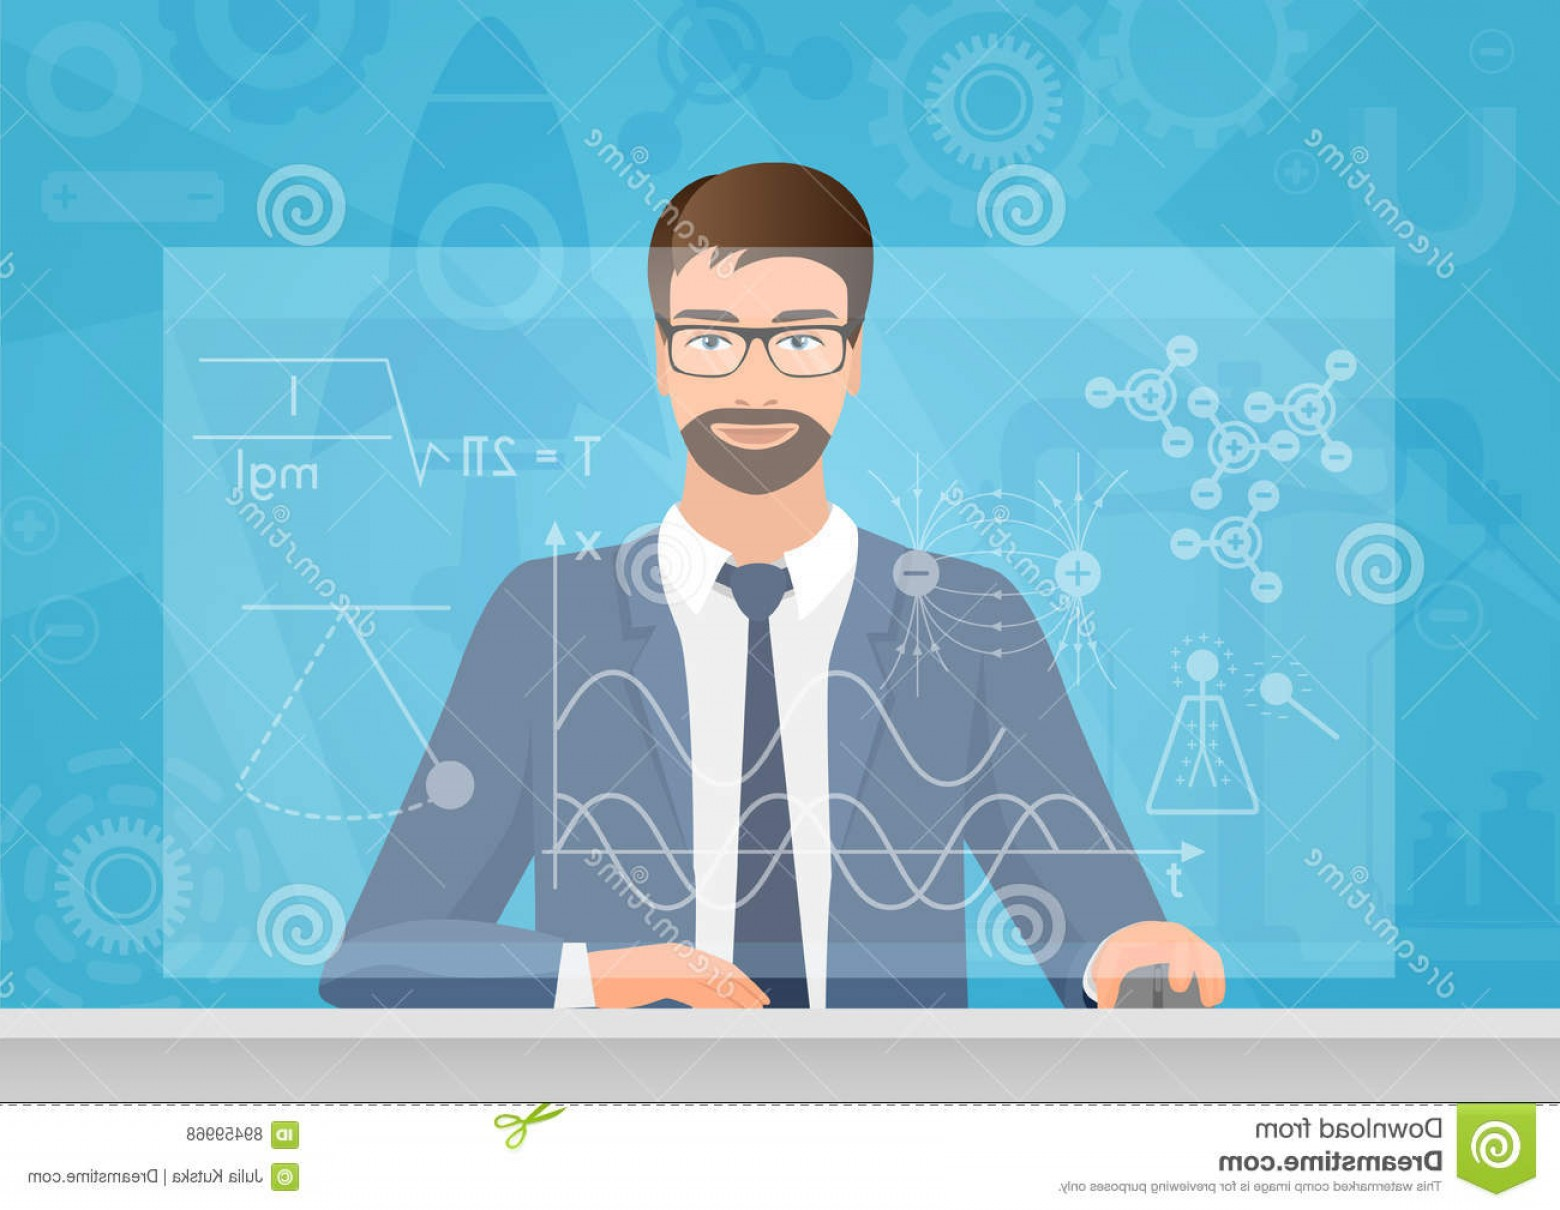 Graphing Vectors Physics: Stock Illustration Bearded Man Physicist Making Graphs Formula Computer Vector Illustration Physics Technology Image